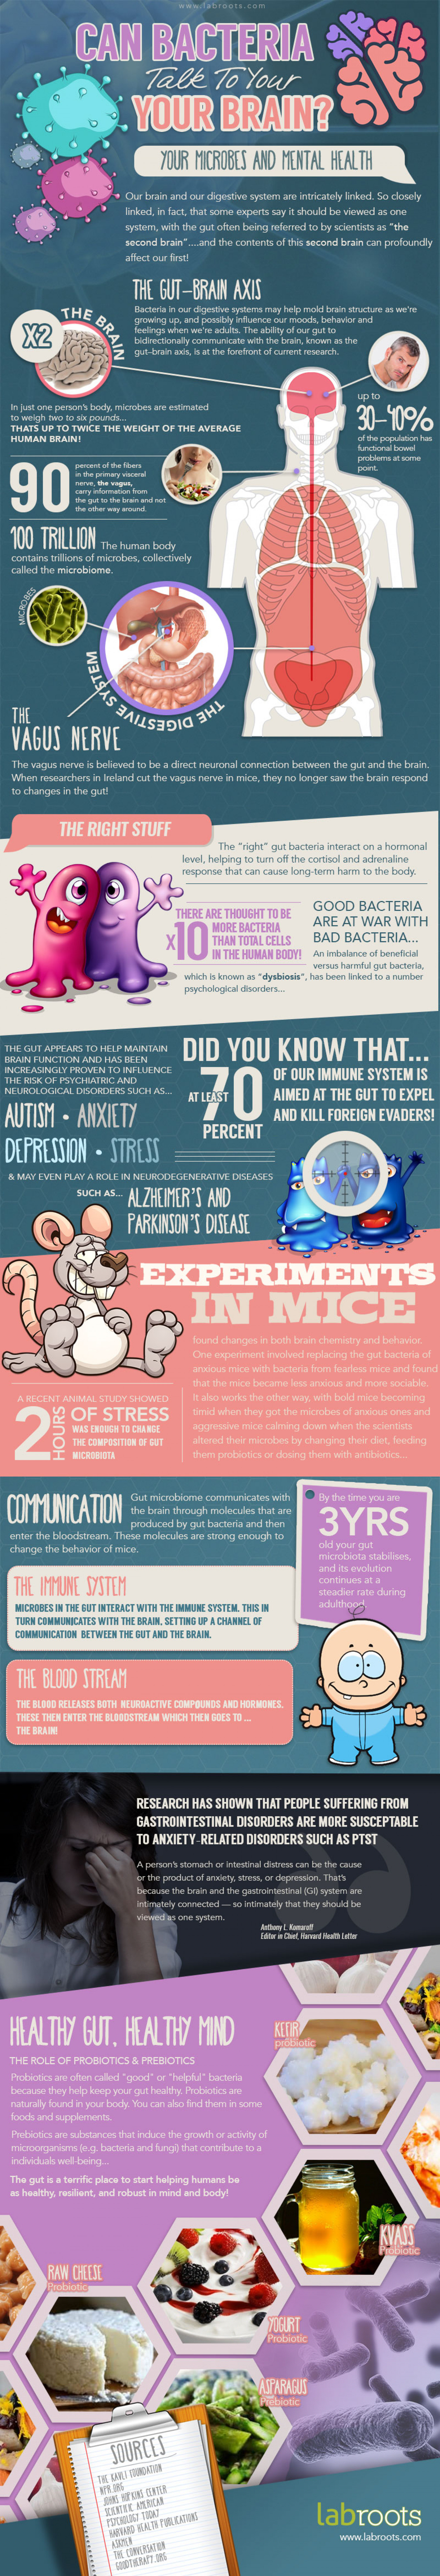 Can Bacteria Talk to Your Brain? Infographic